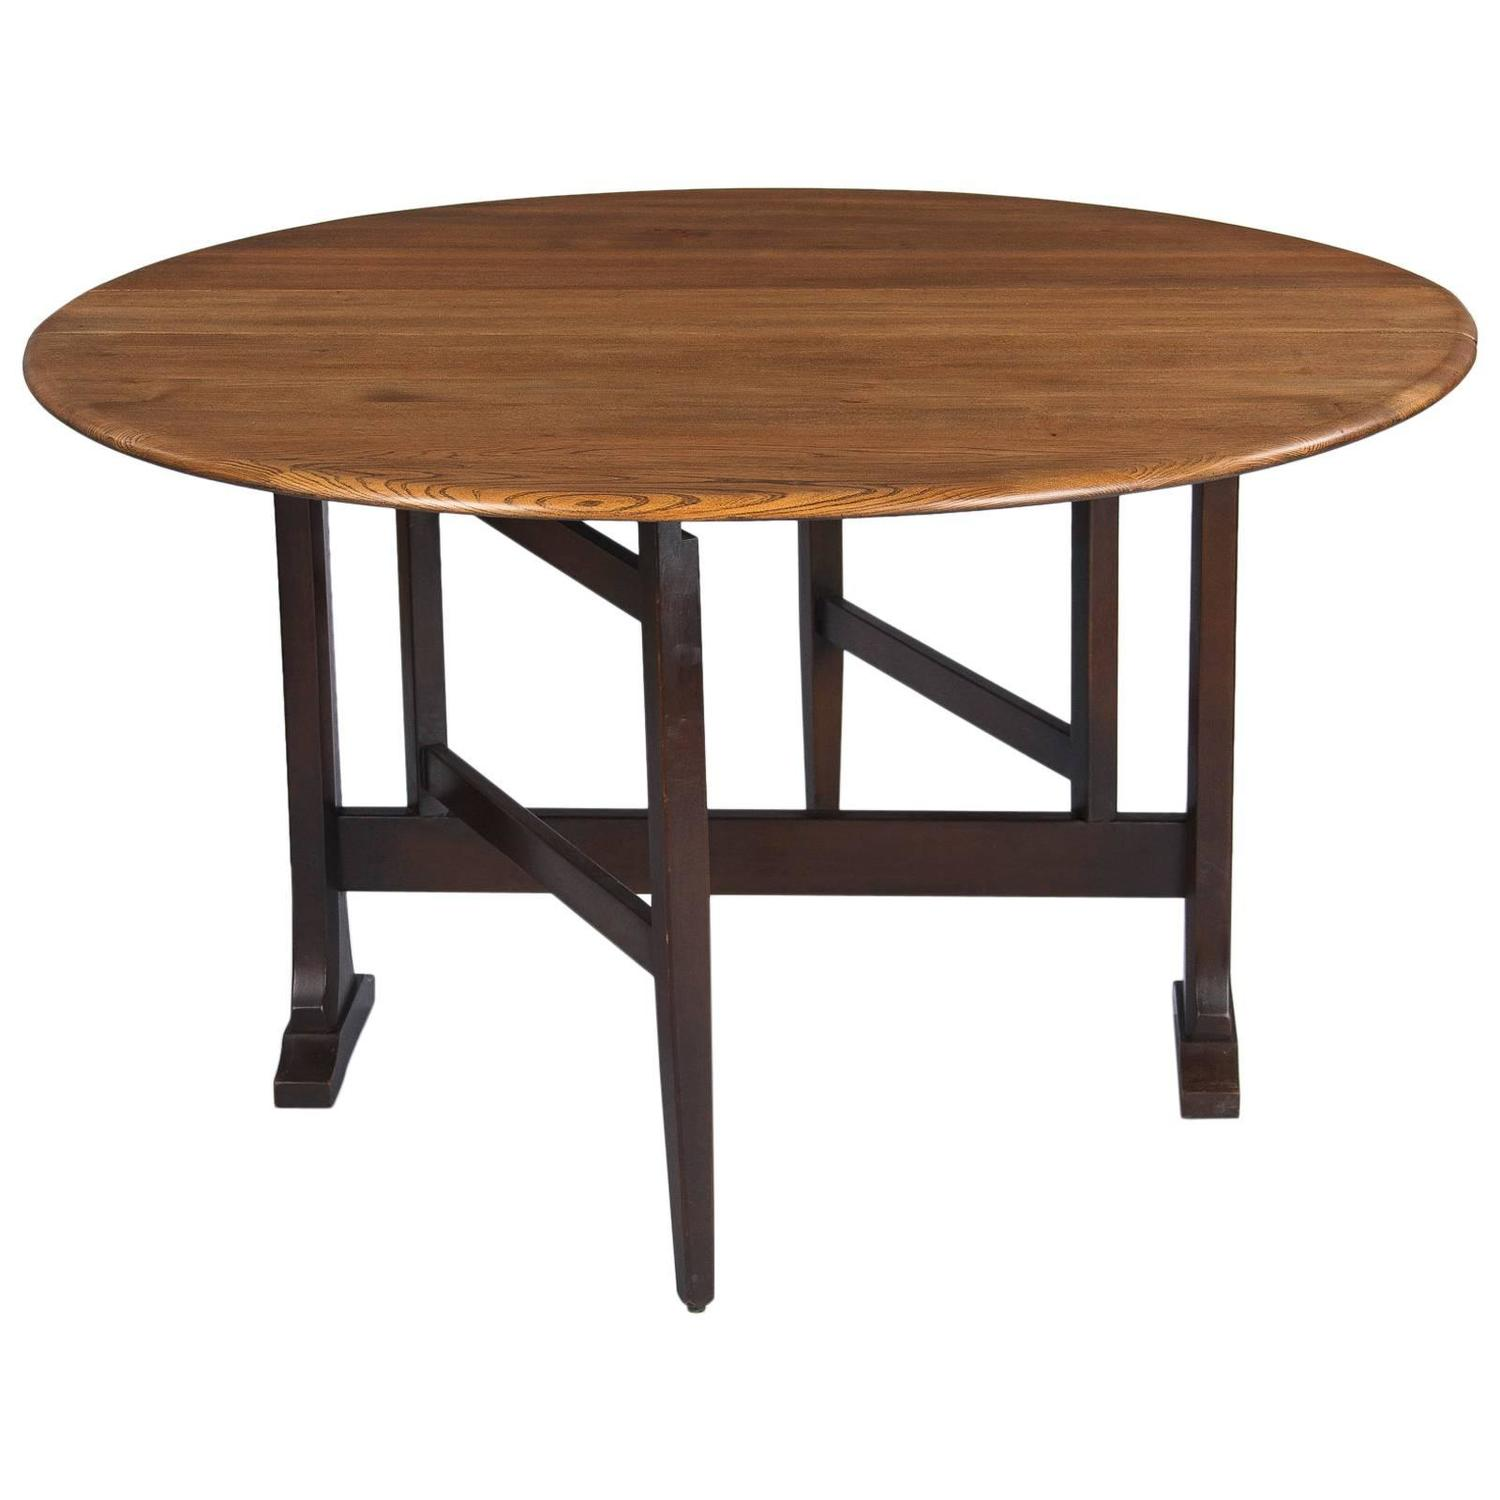 Midcentury oak gateleg table by ercol england for sale at for England table